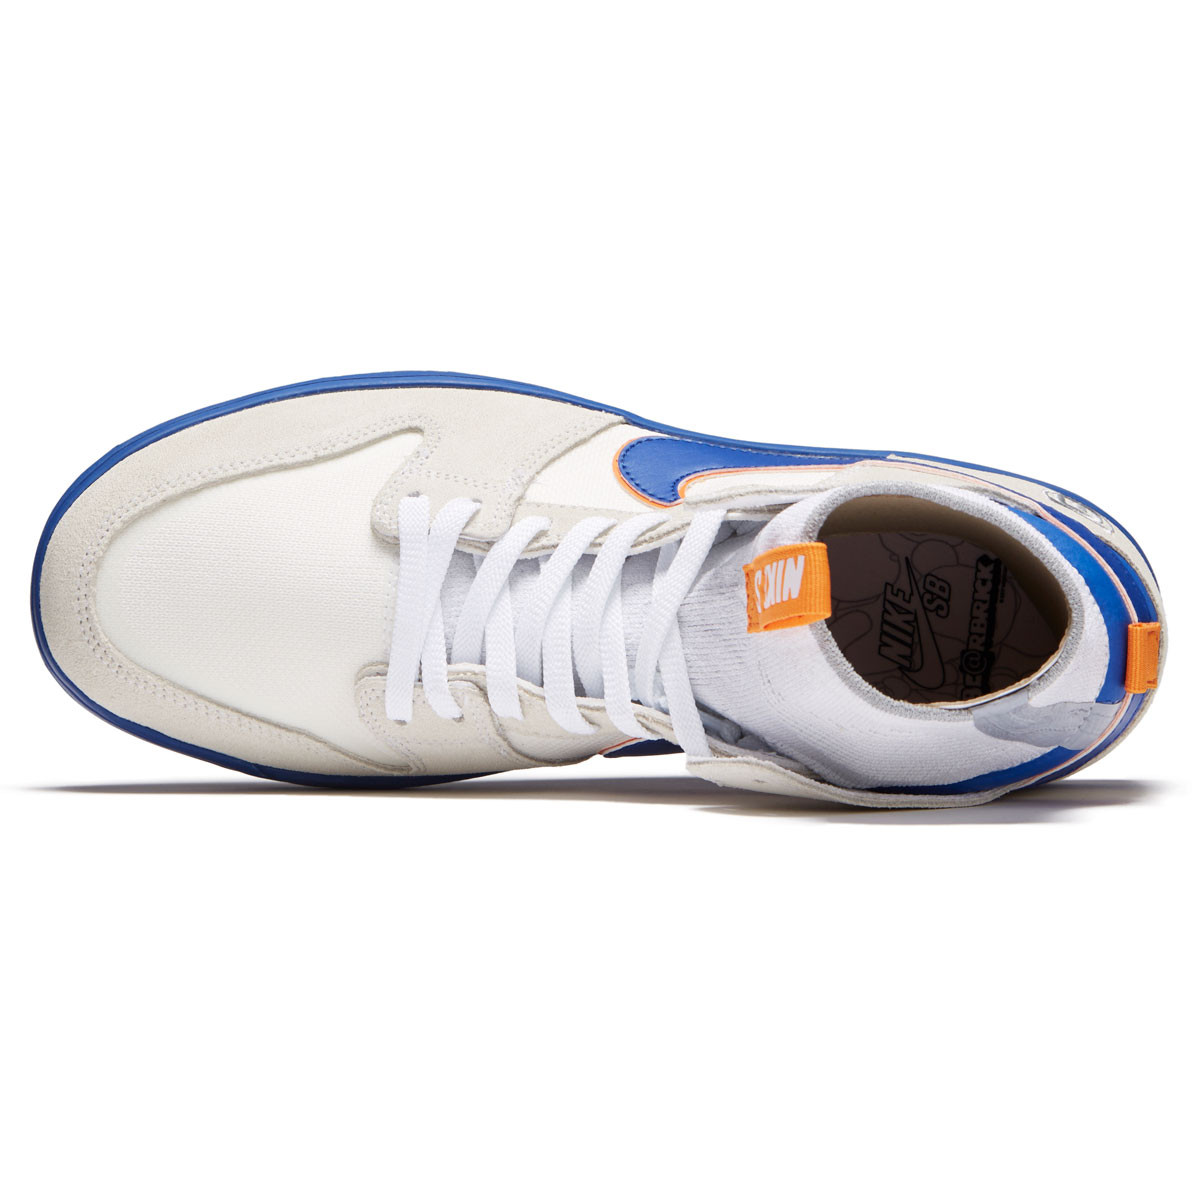 best sneakers 419bf 93395 Nike SB x Medicom Dunk High Elite QS Shoes - White College Blue Gold